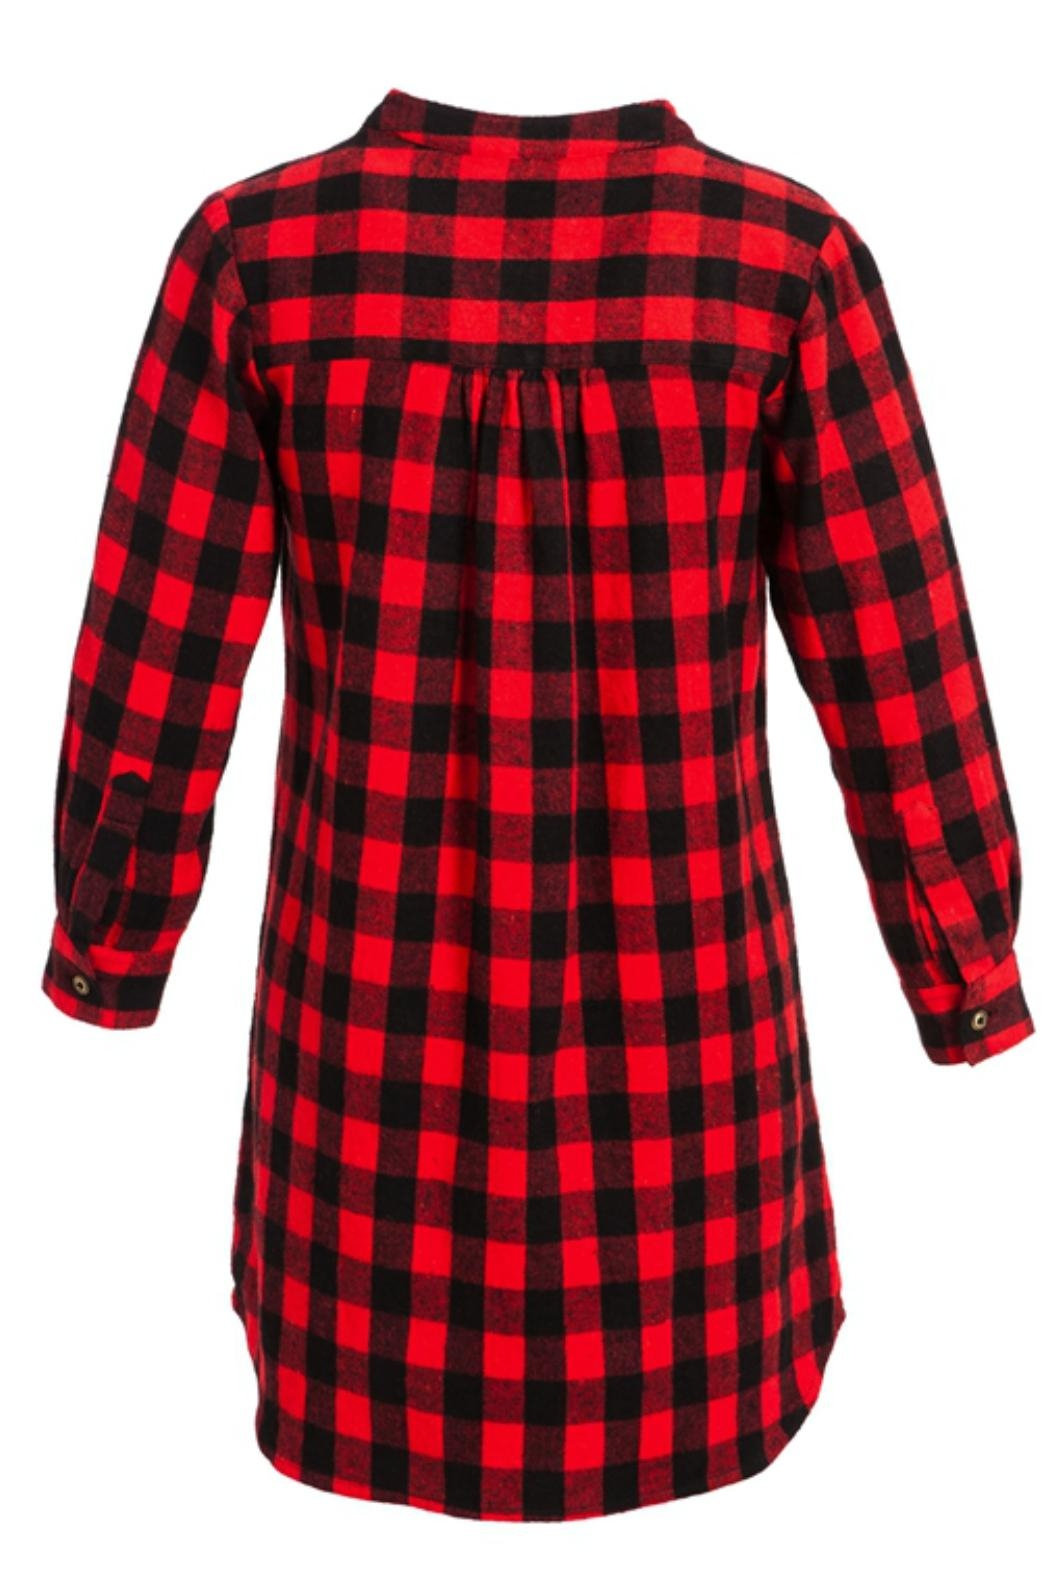 Evergreen Enterprises Buffalo Plaid Shirtdress - Side Cropped Image